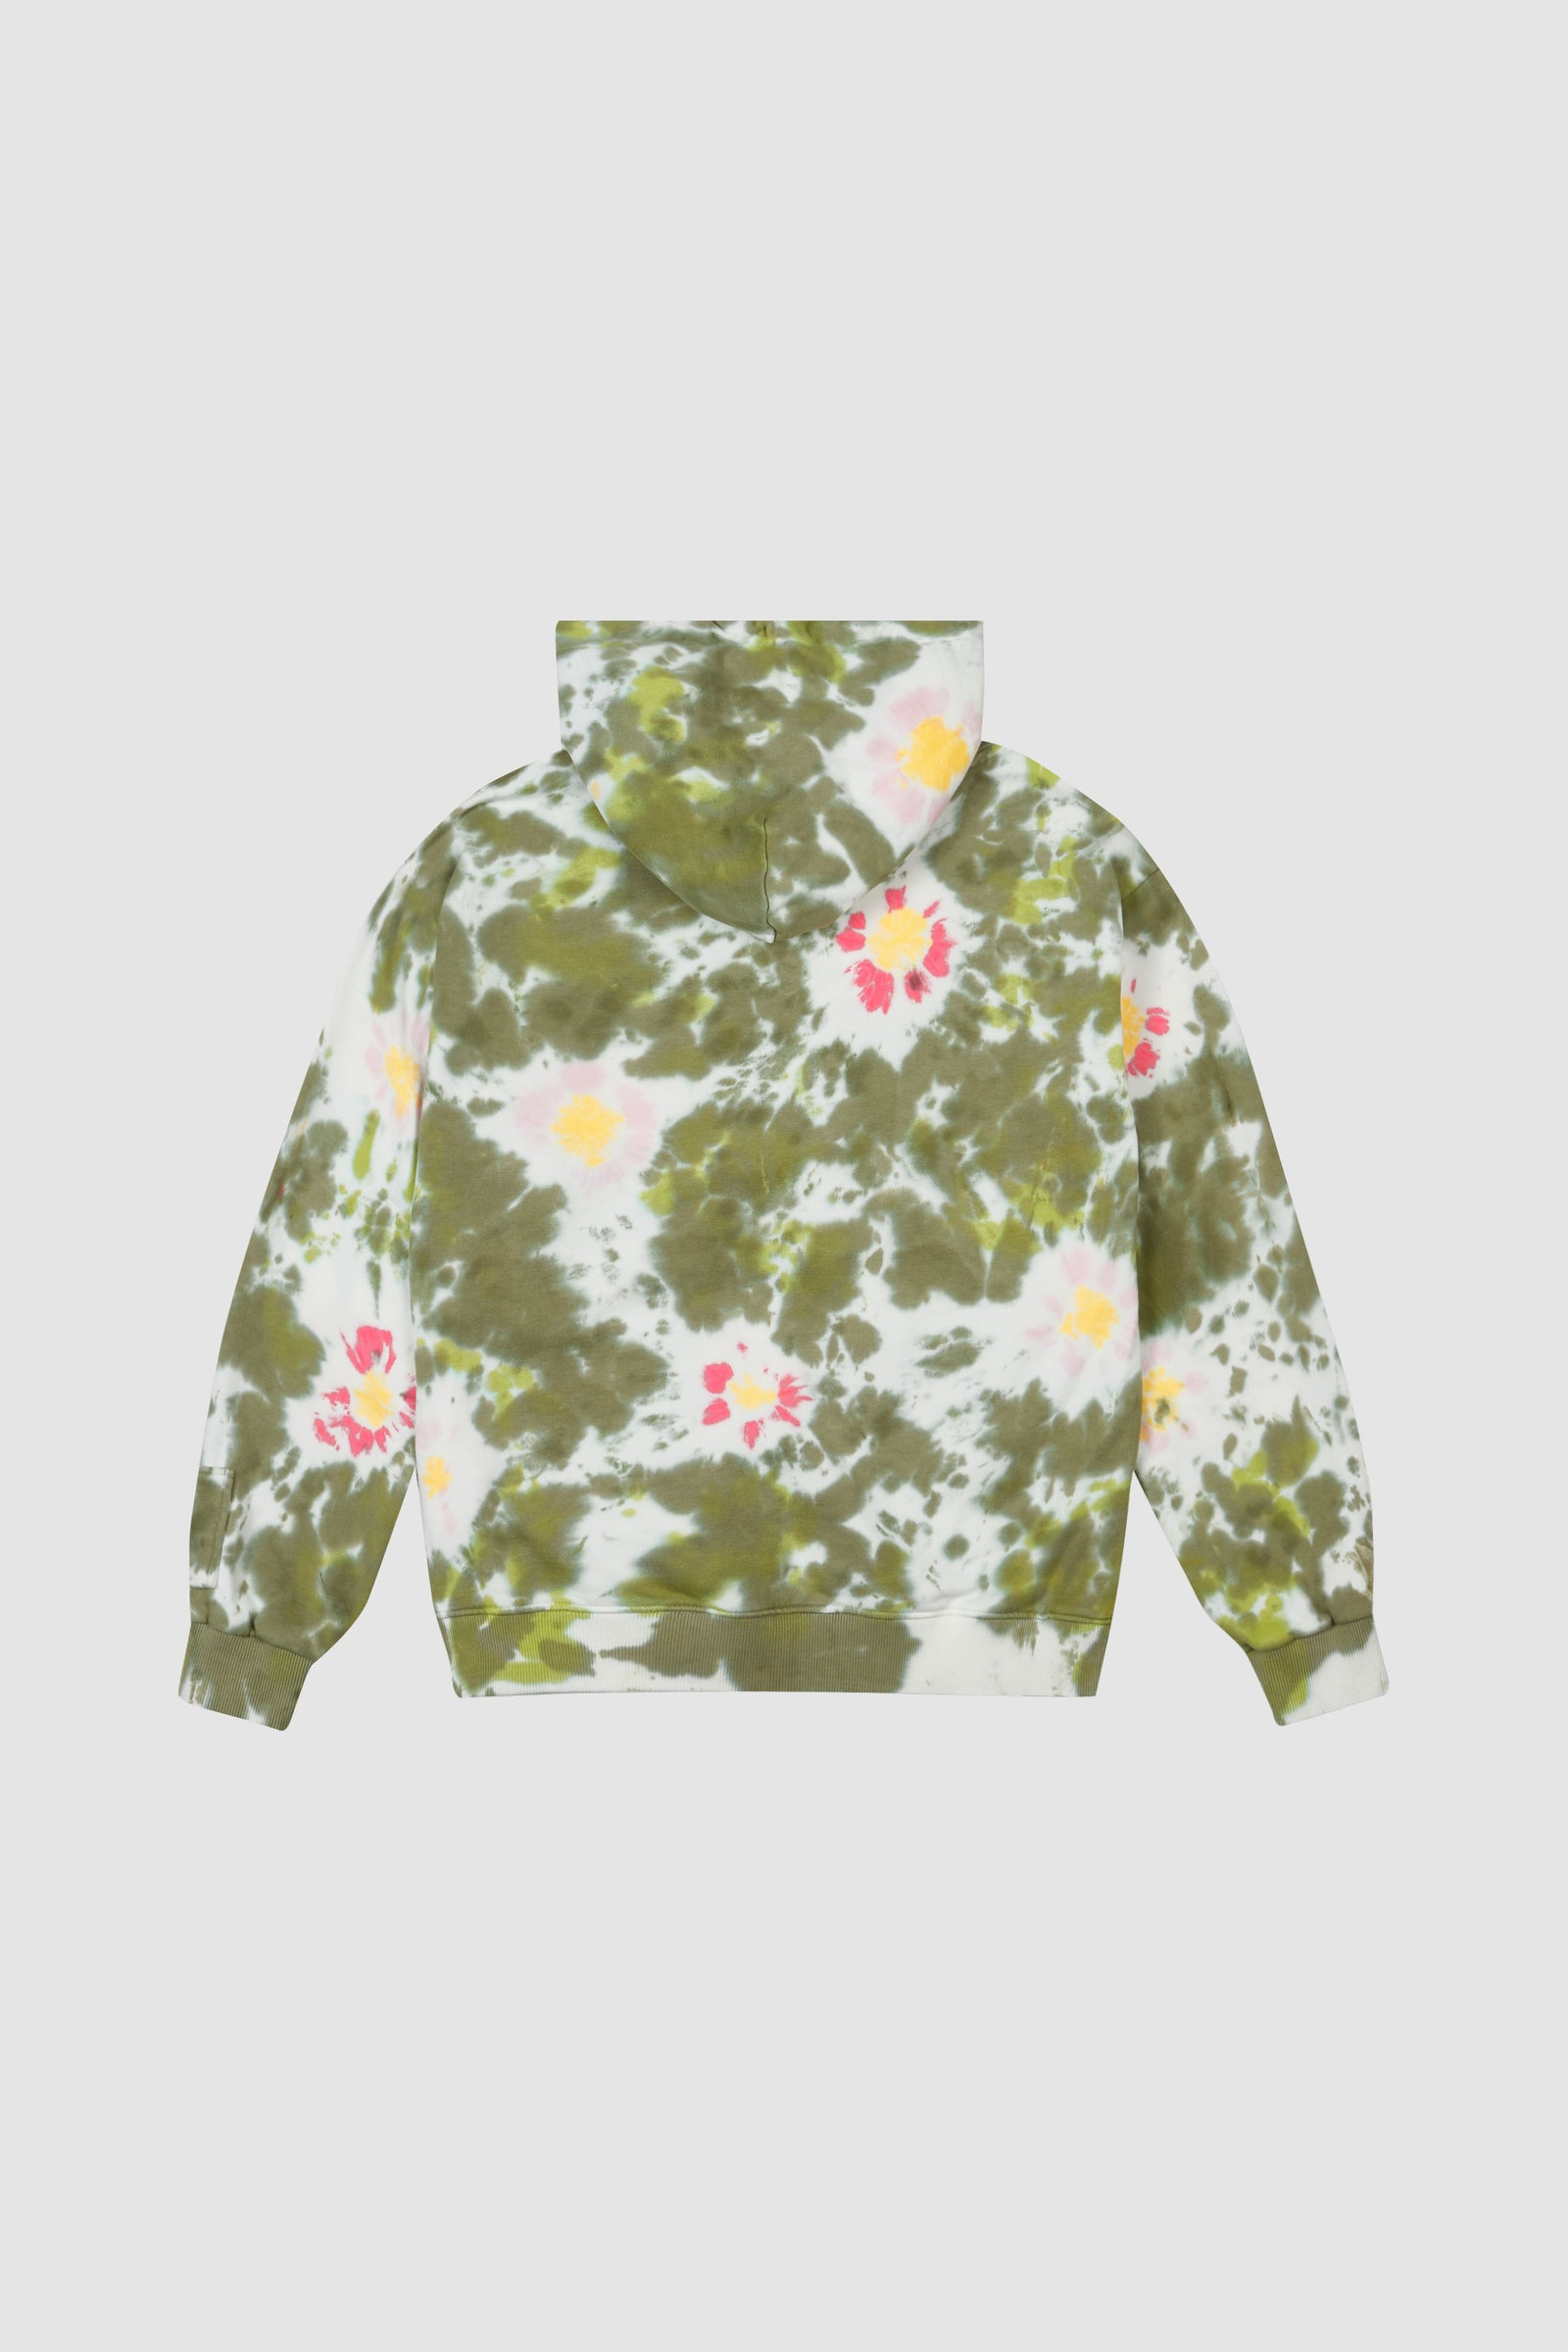 Photo of Cherry Blossom Tie-Dye Hoodie, number 3